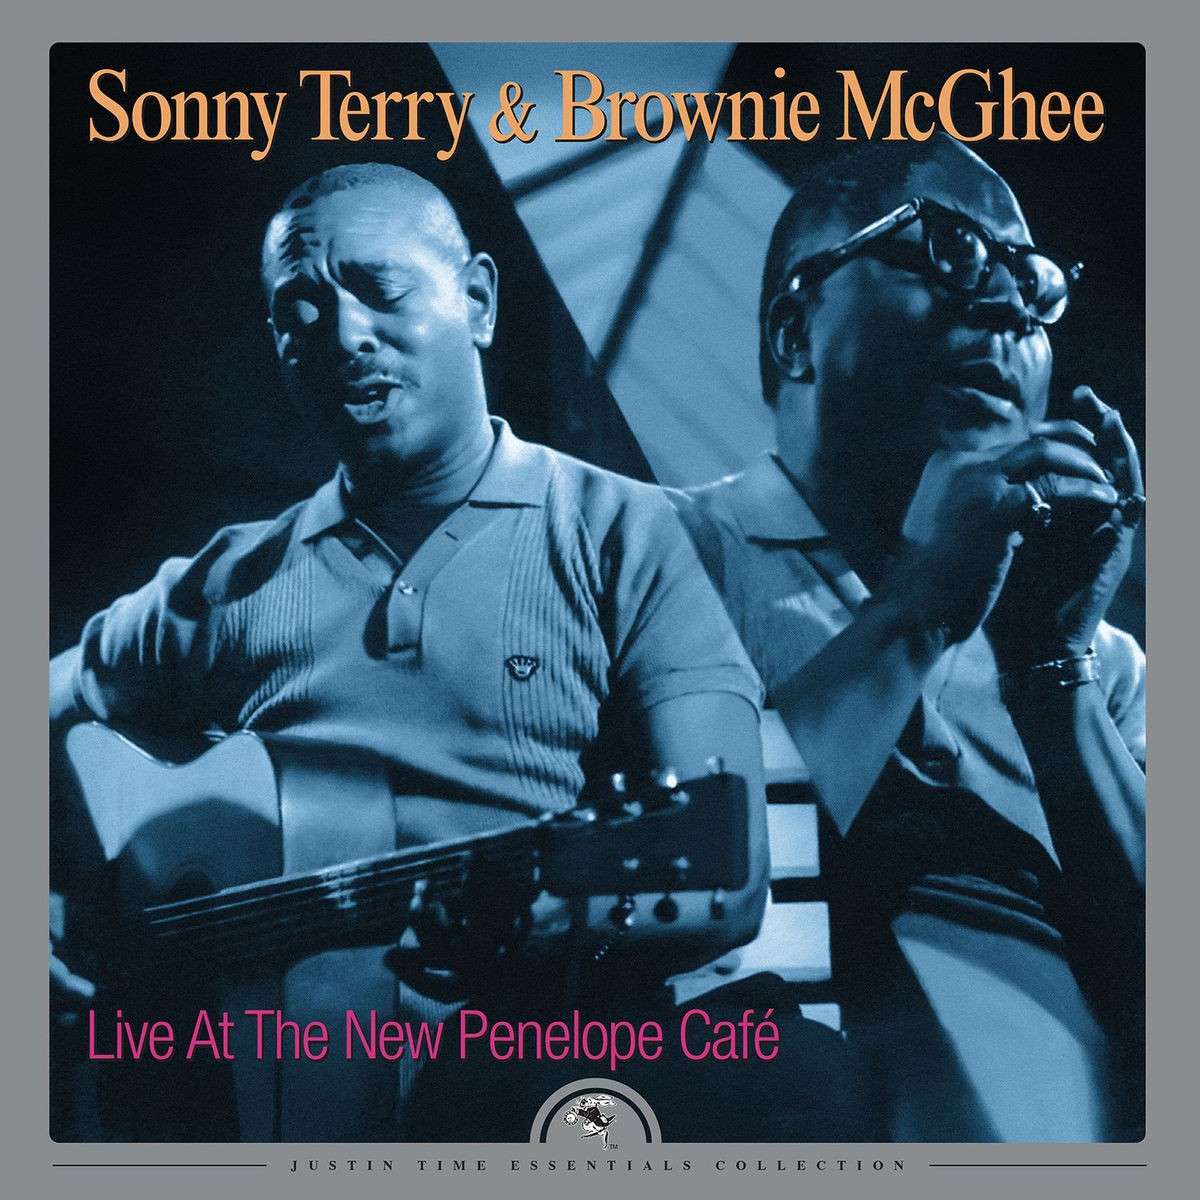 Sonny Terry & Brownie McGhee - Live at the New Penelope Café VINYL - 6894491311